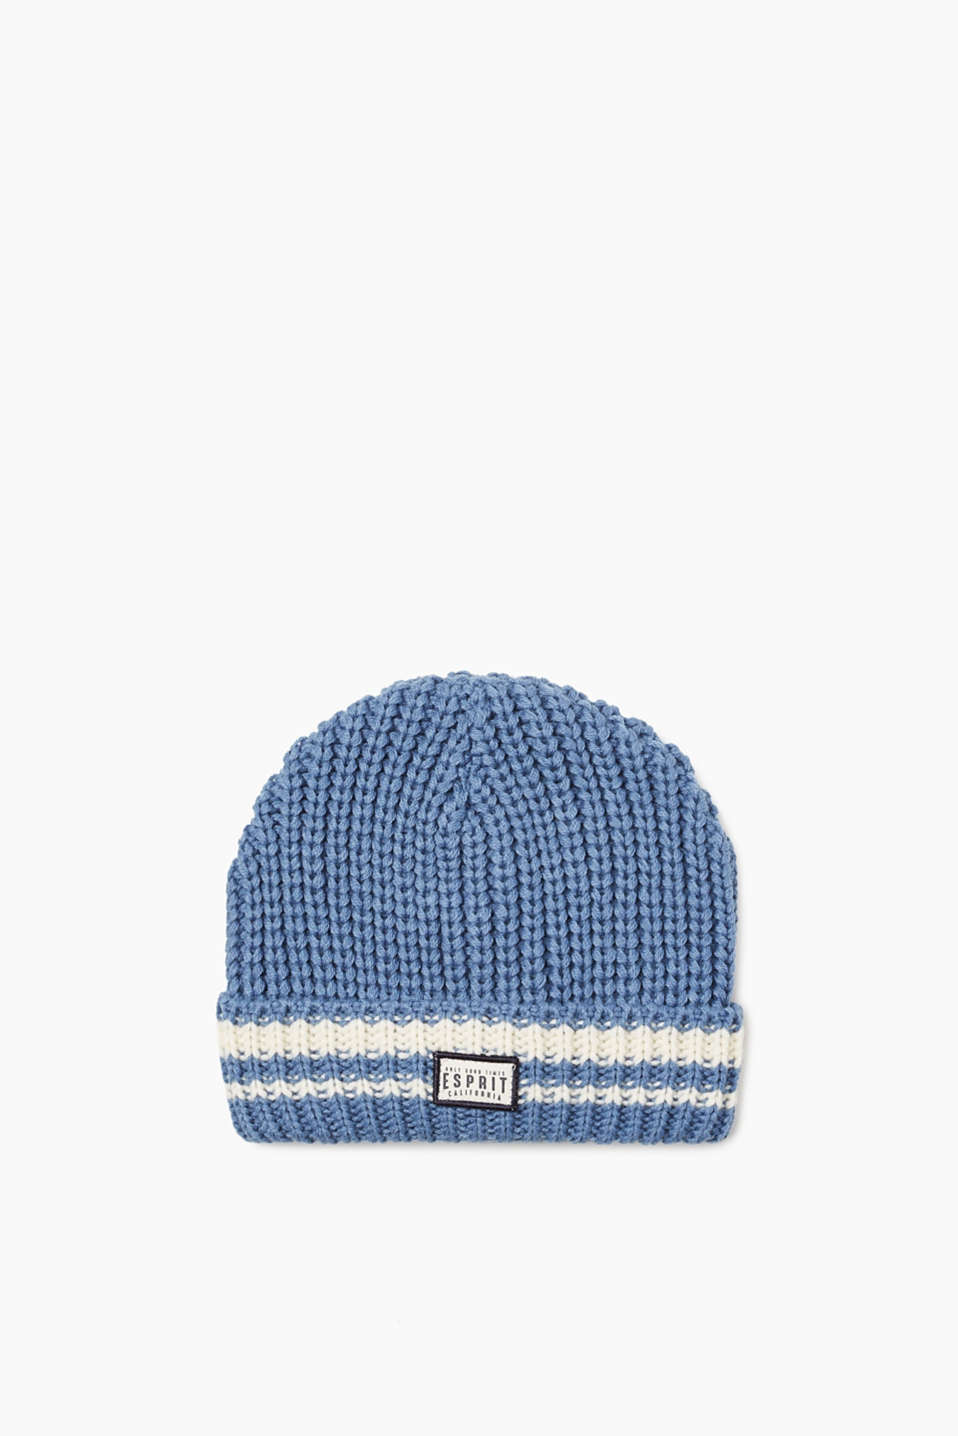 Esprit - Chunky knit hat with a striped cuff